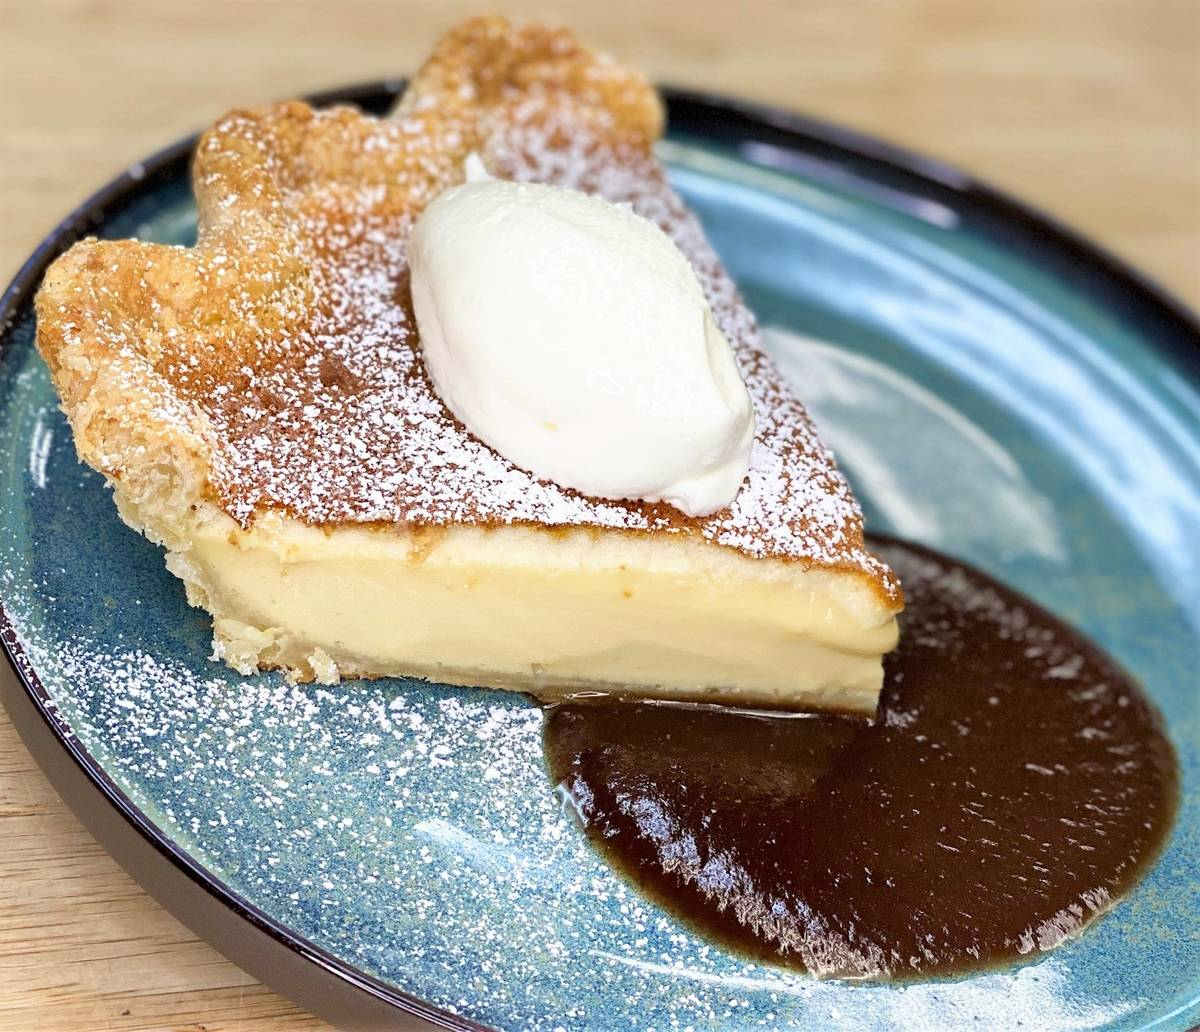 The Pop 'n Pies egg custard pie is available at Sparrow & Wolf. (Sparrow & Wolf)